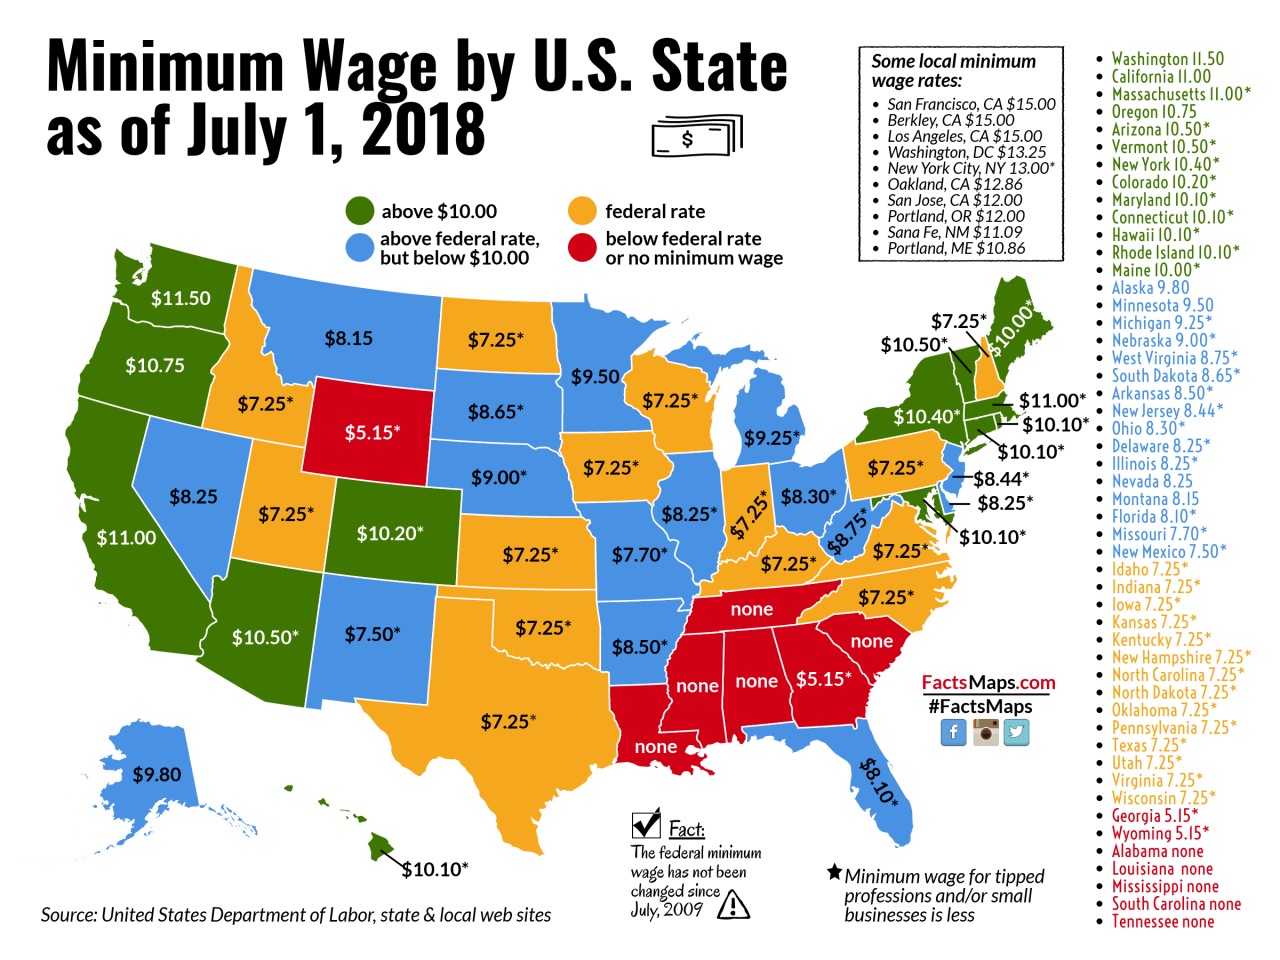 minimum-wage-by-us-state-by-July-2018.png